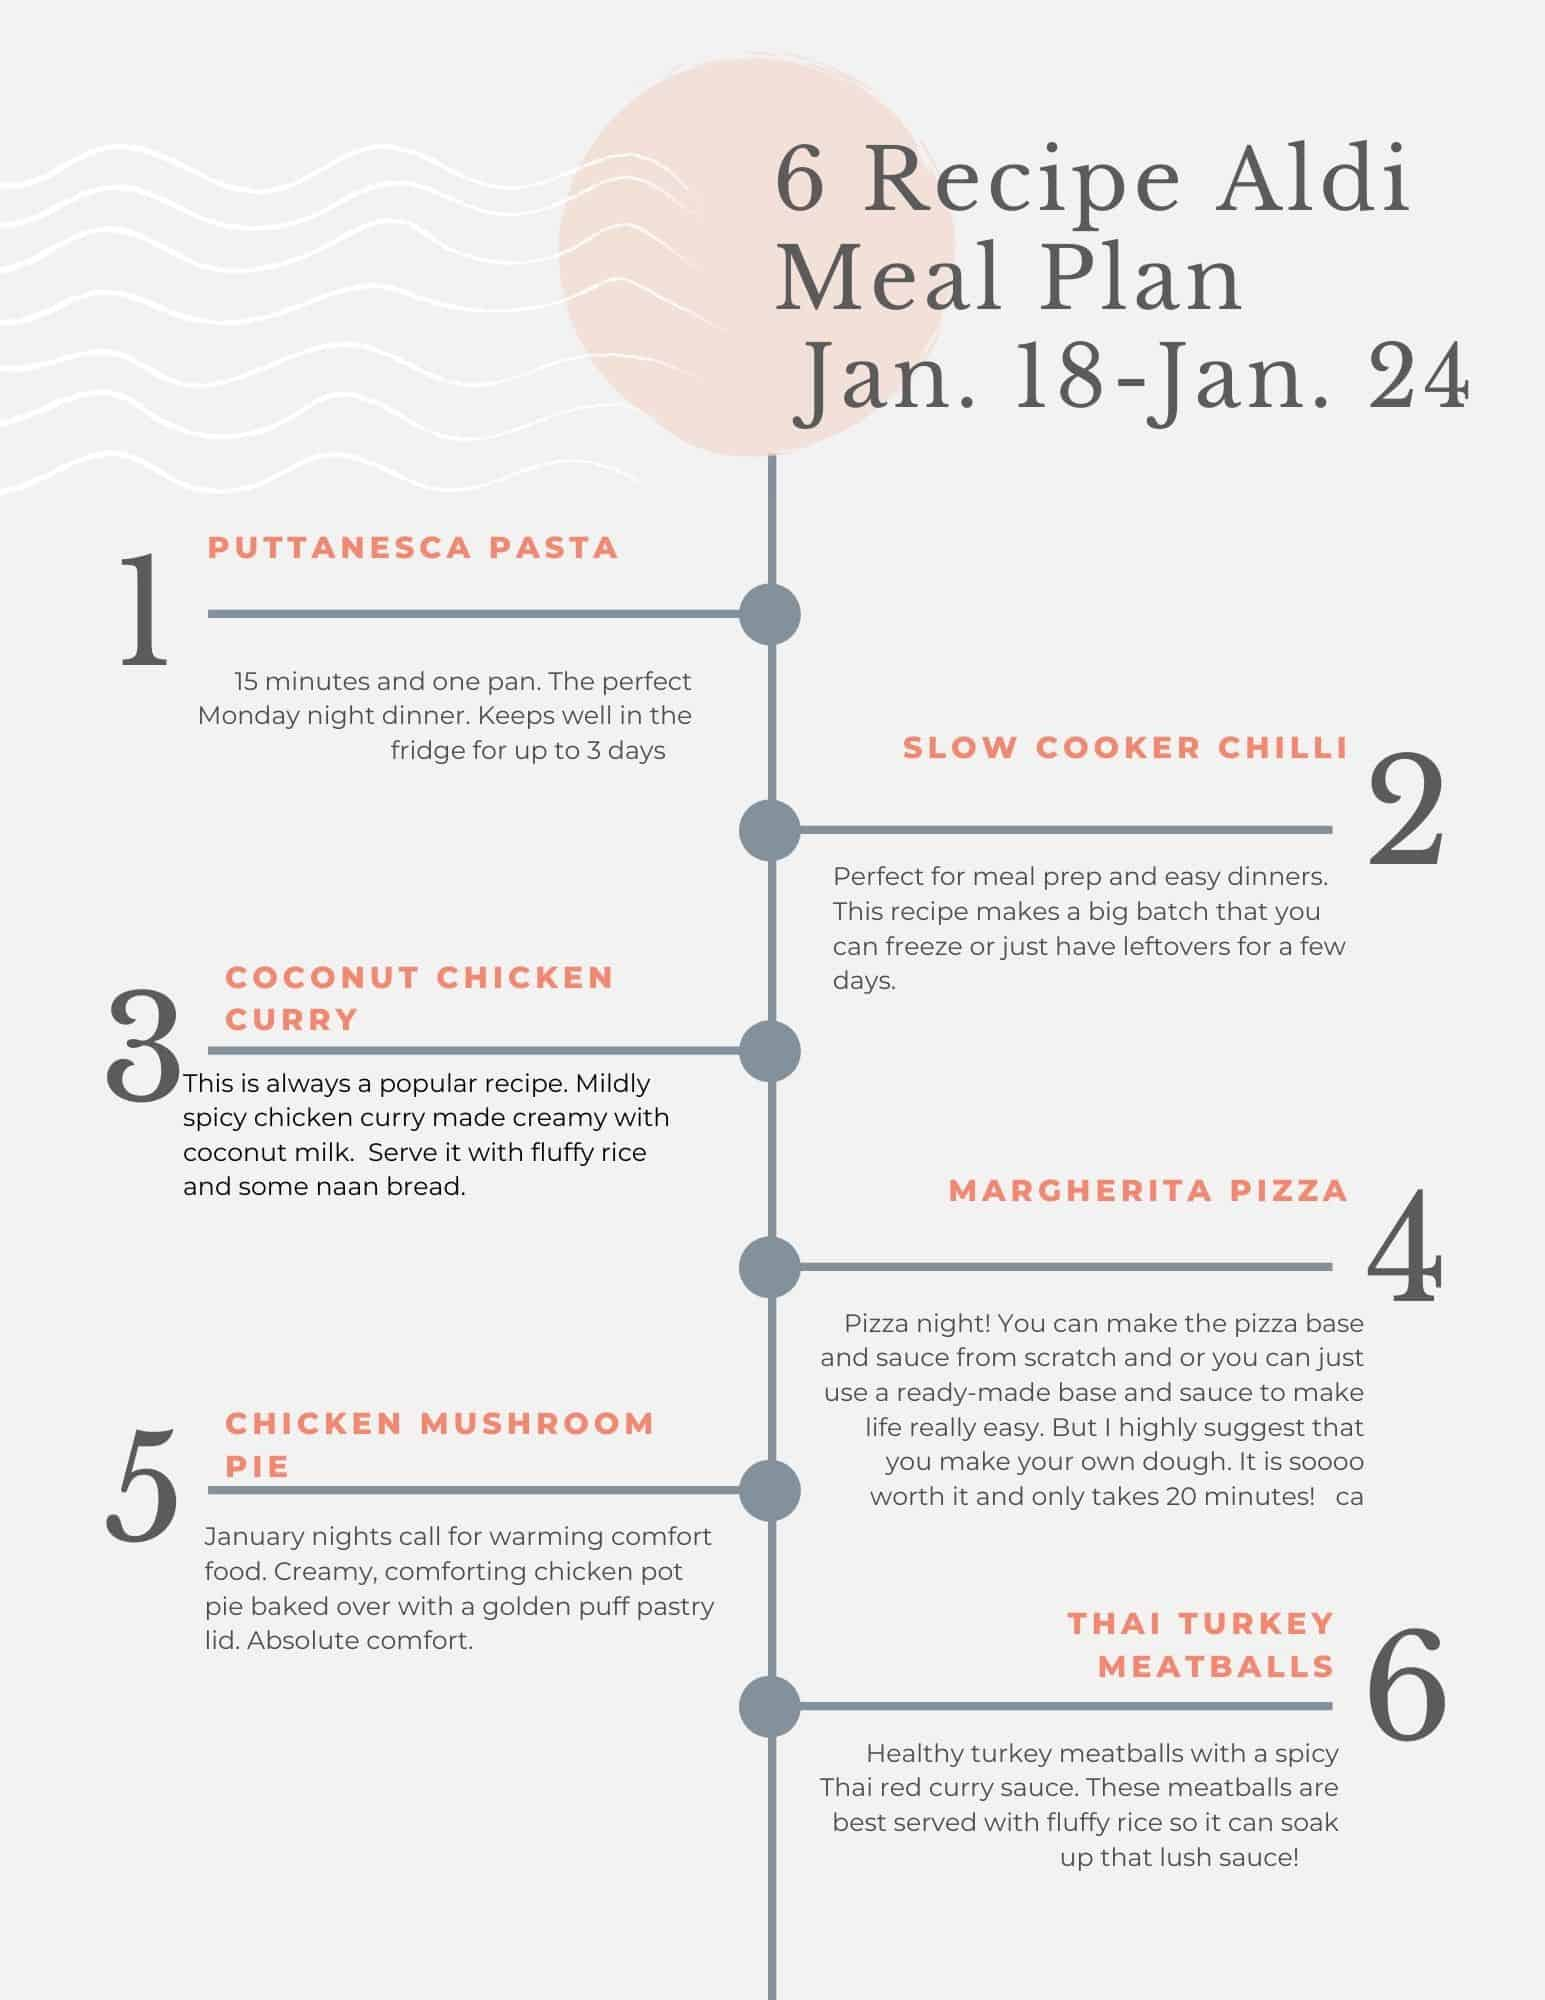 Budget meal plan print out